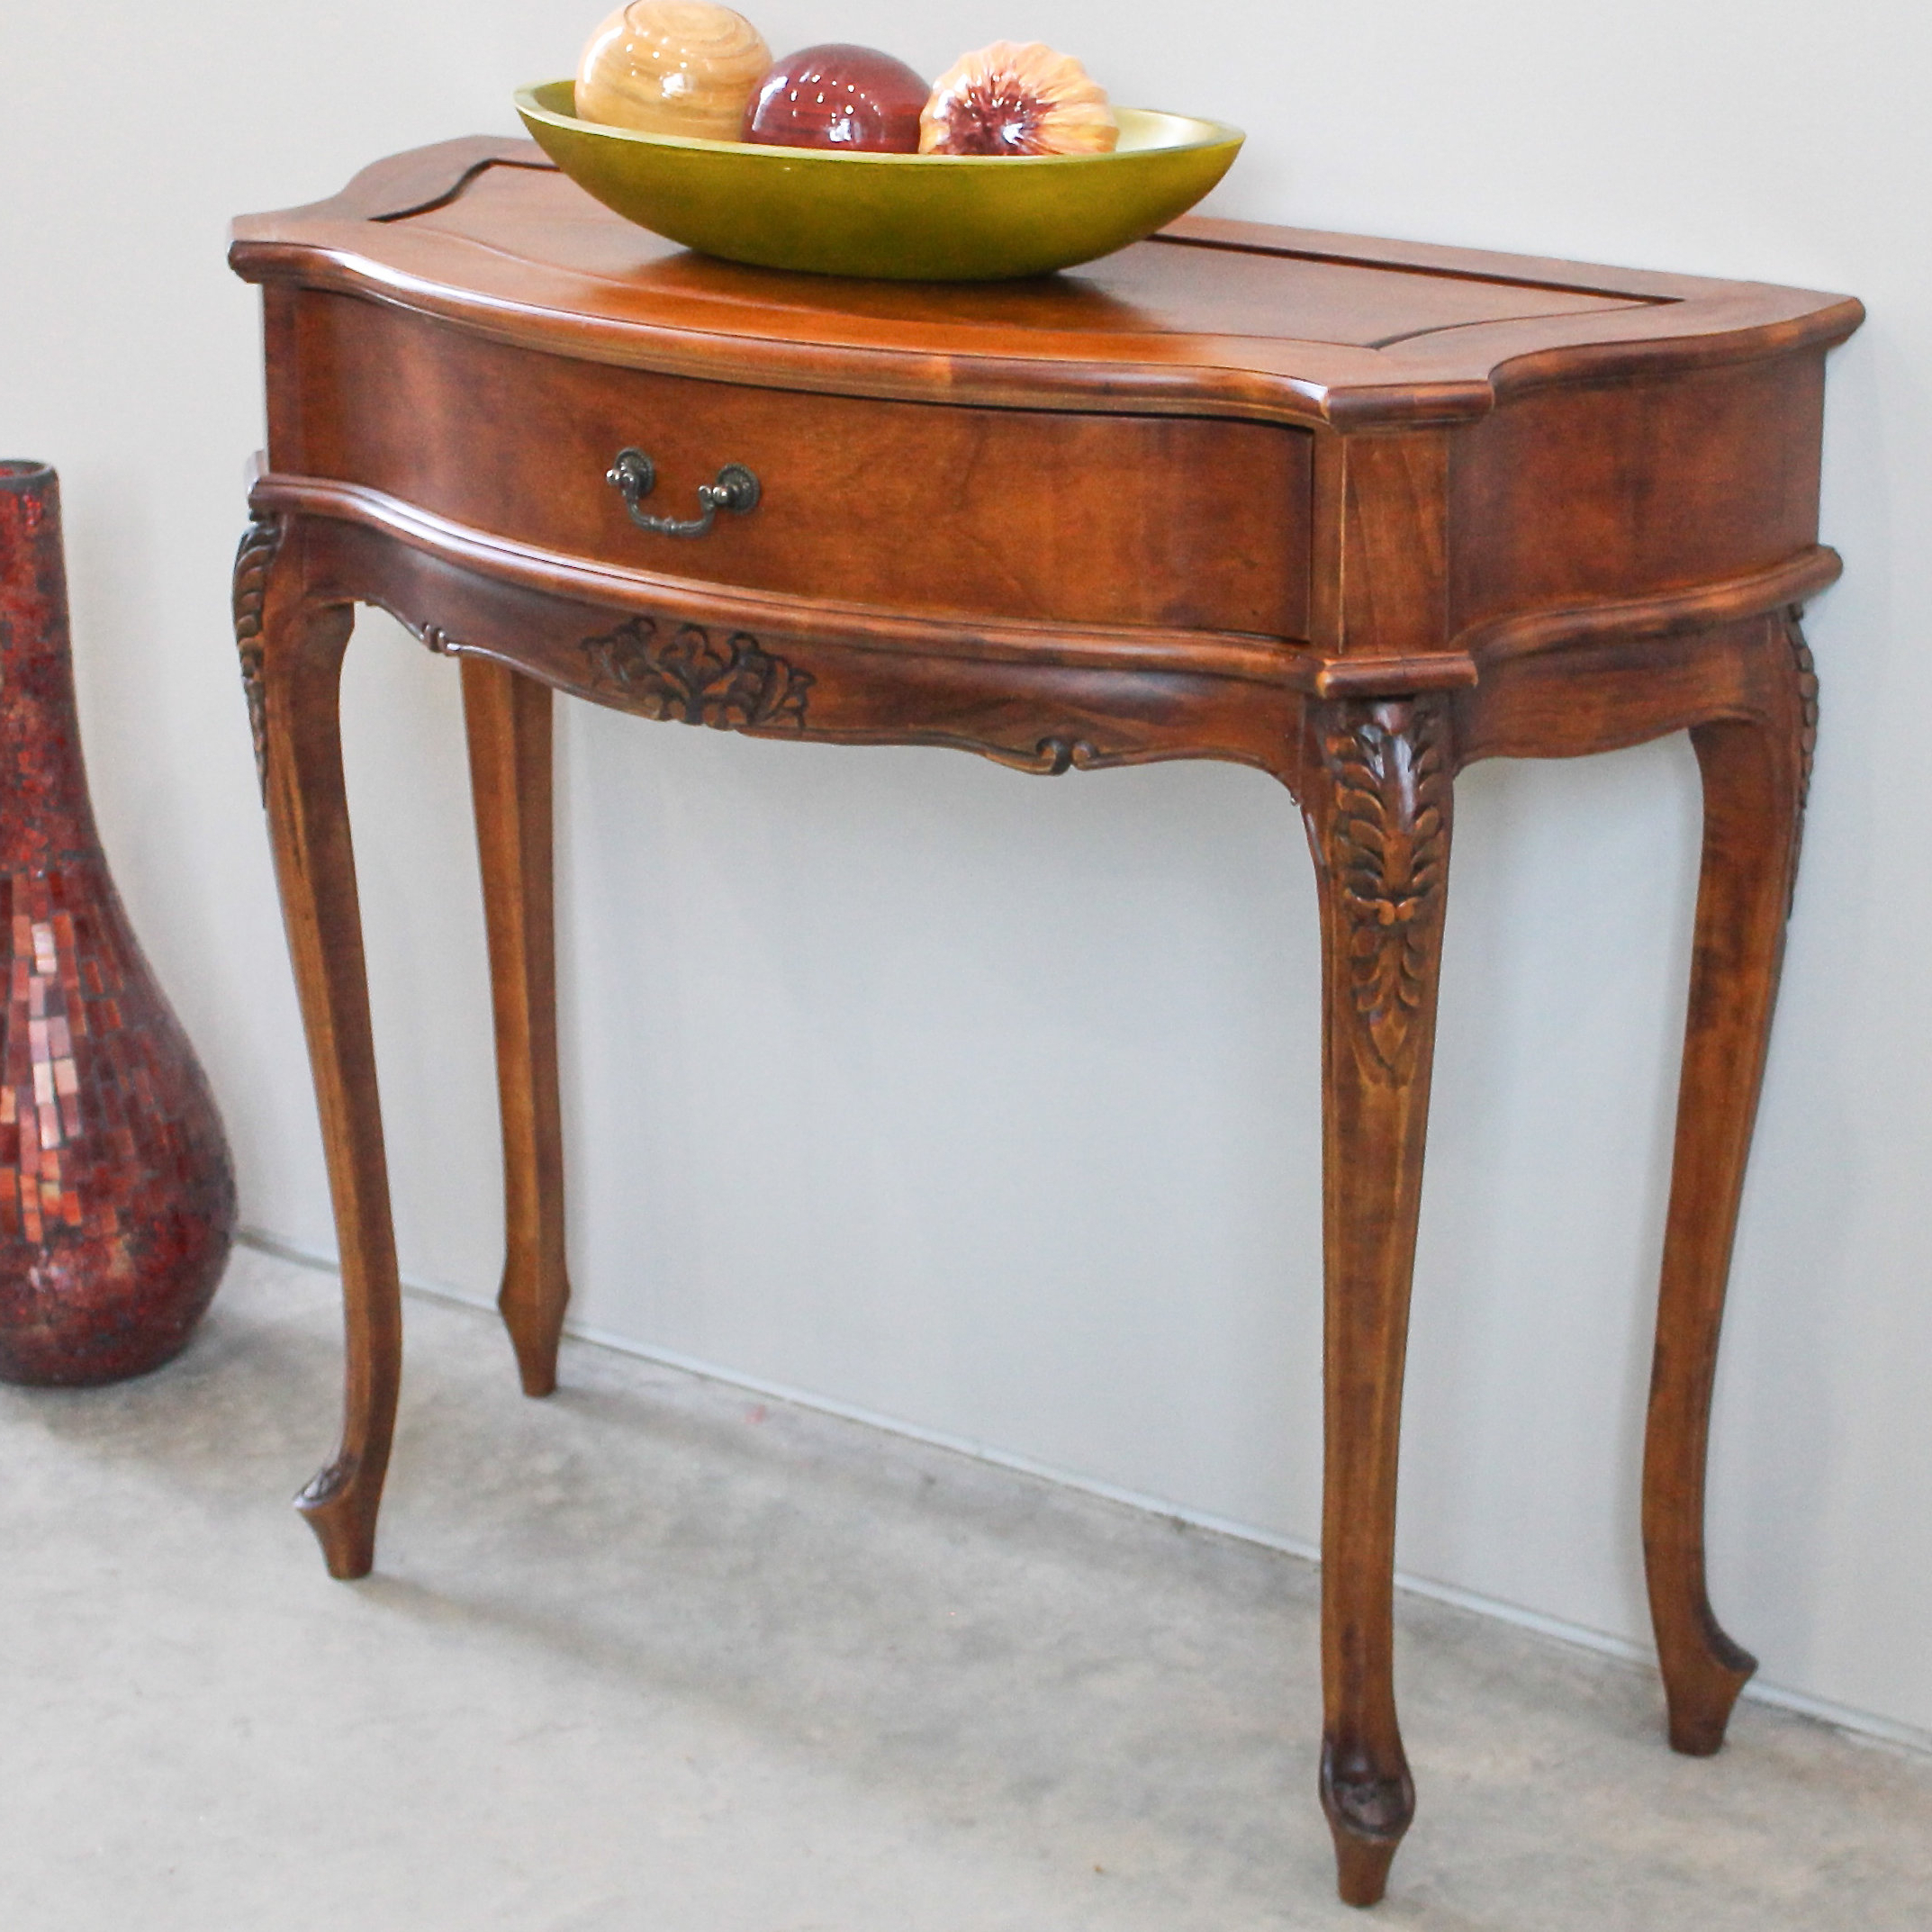 Carved Indian Furniture | Wayfair.ca In Balboa Carved Console Tables (Gallery 18 of 20)